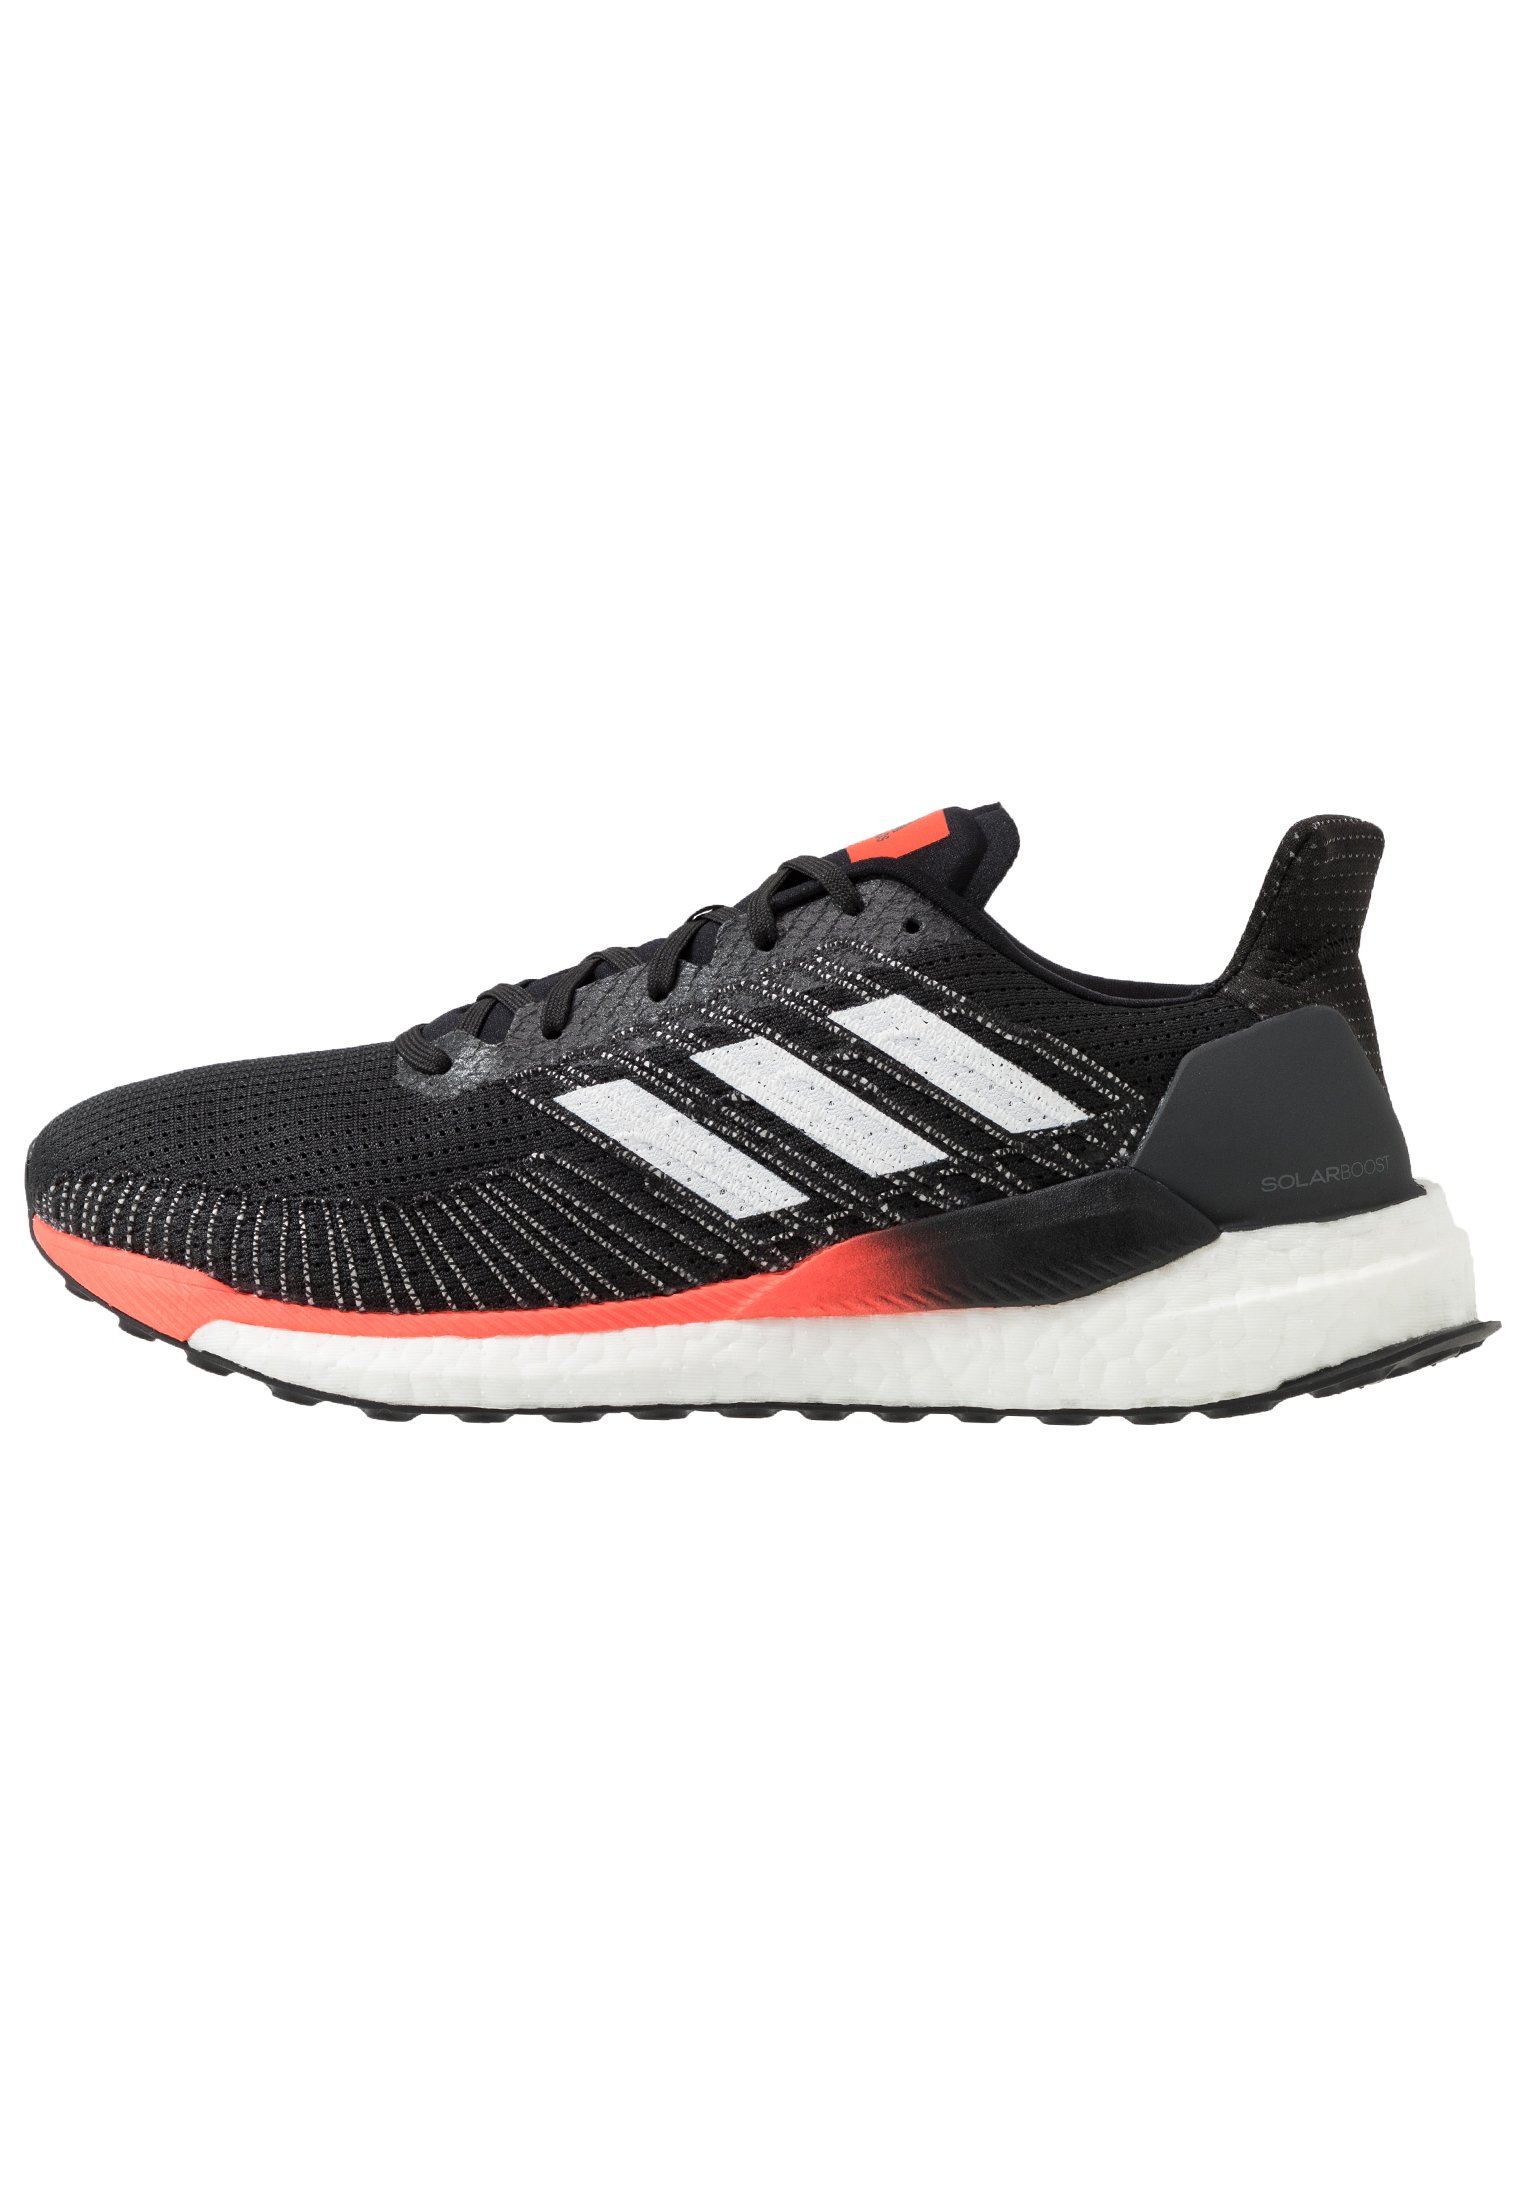 adidas Performance Solar Boost Shoes Chaussures de running